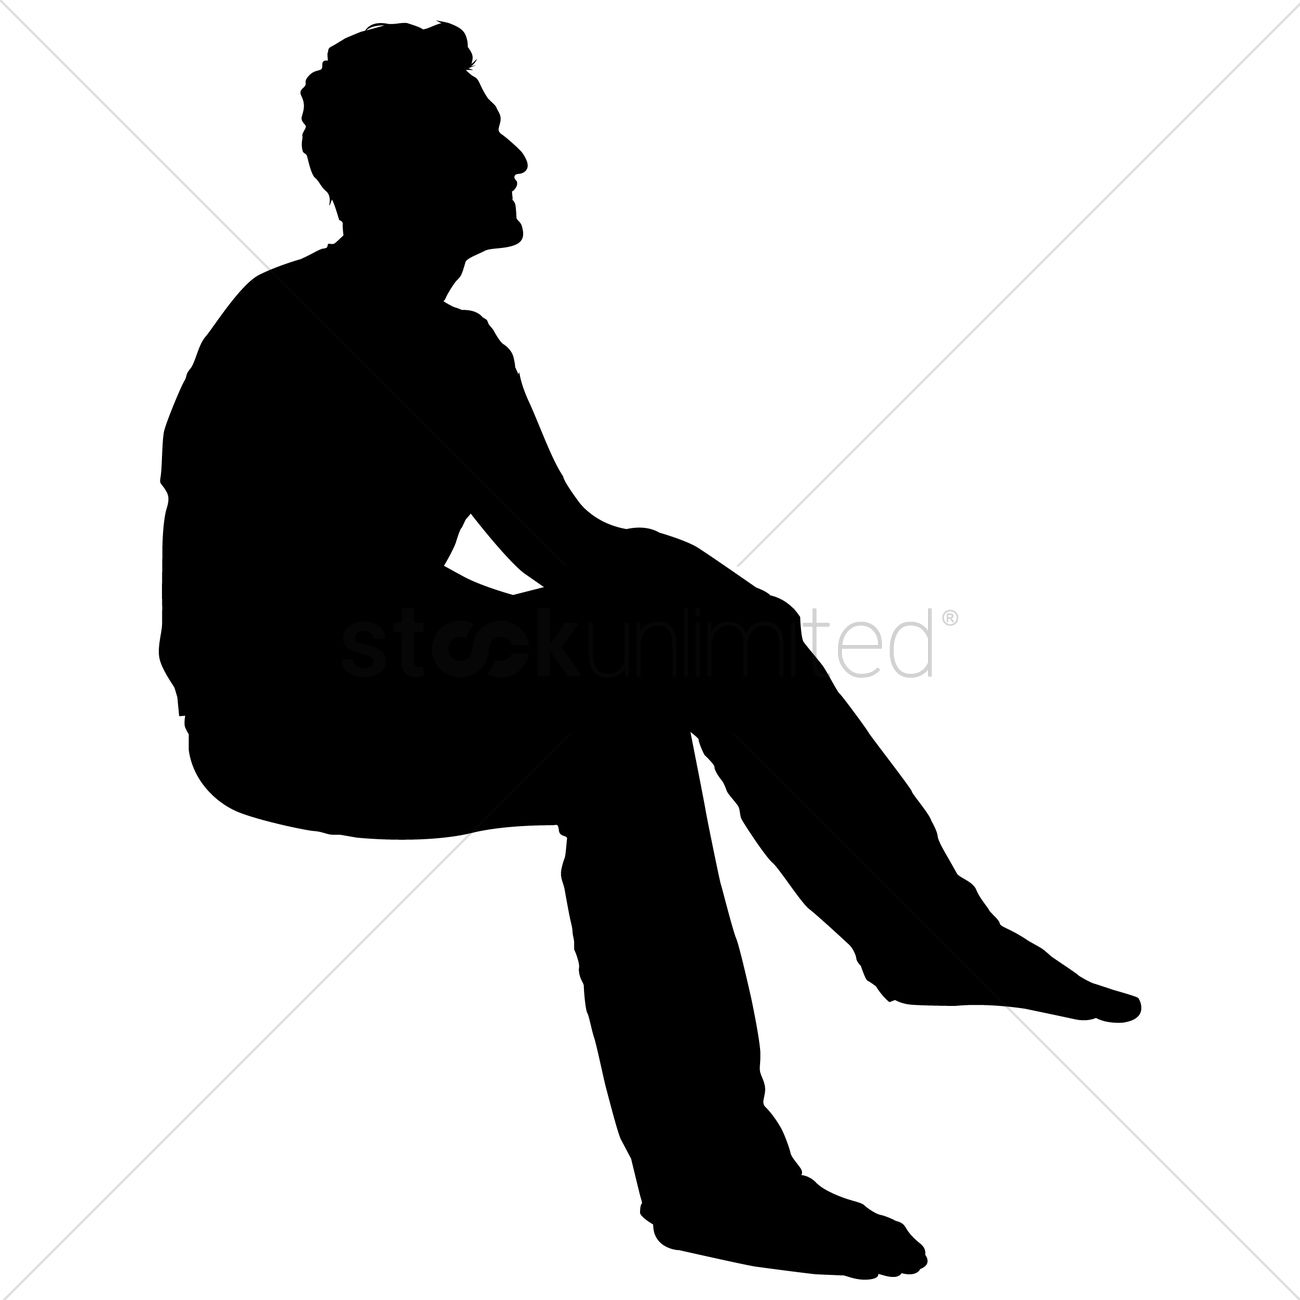 Clipart Silhouette Of A Person Sitting Clipground